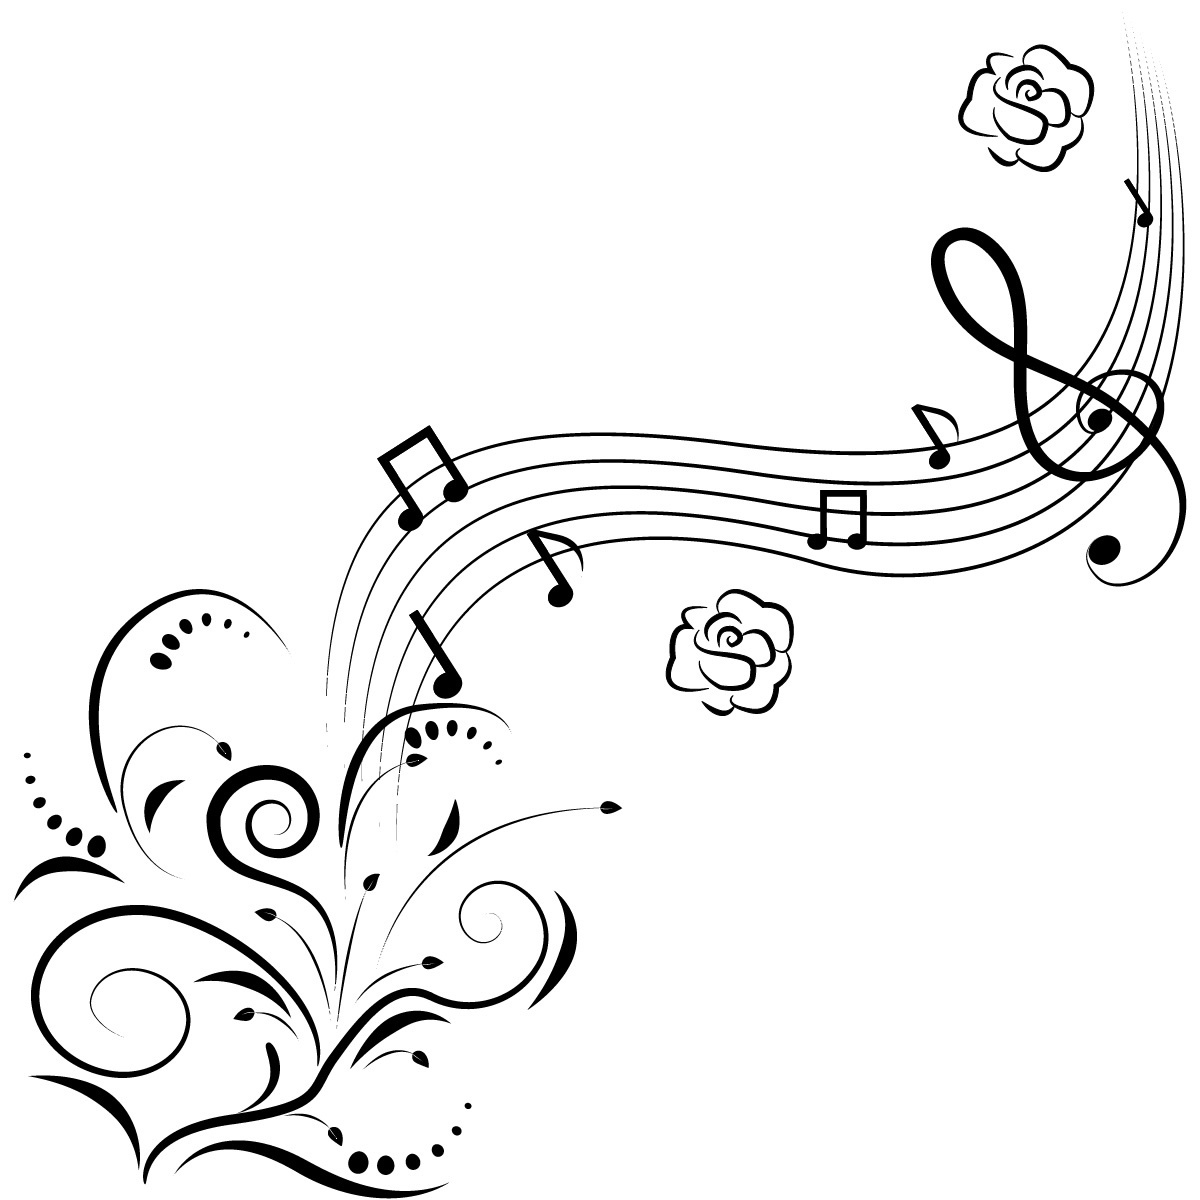 Musical clipart music room. Sign drawing at getdrawings